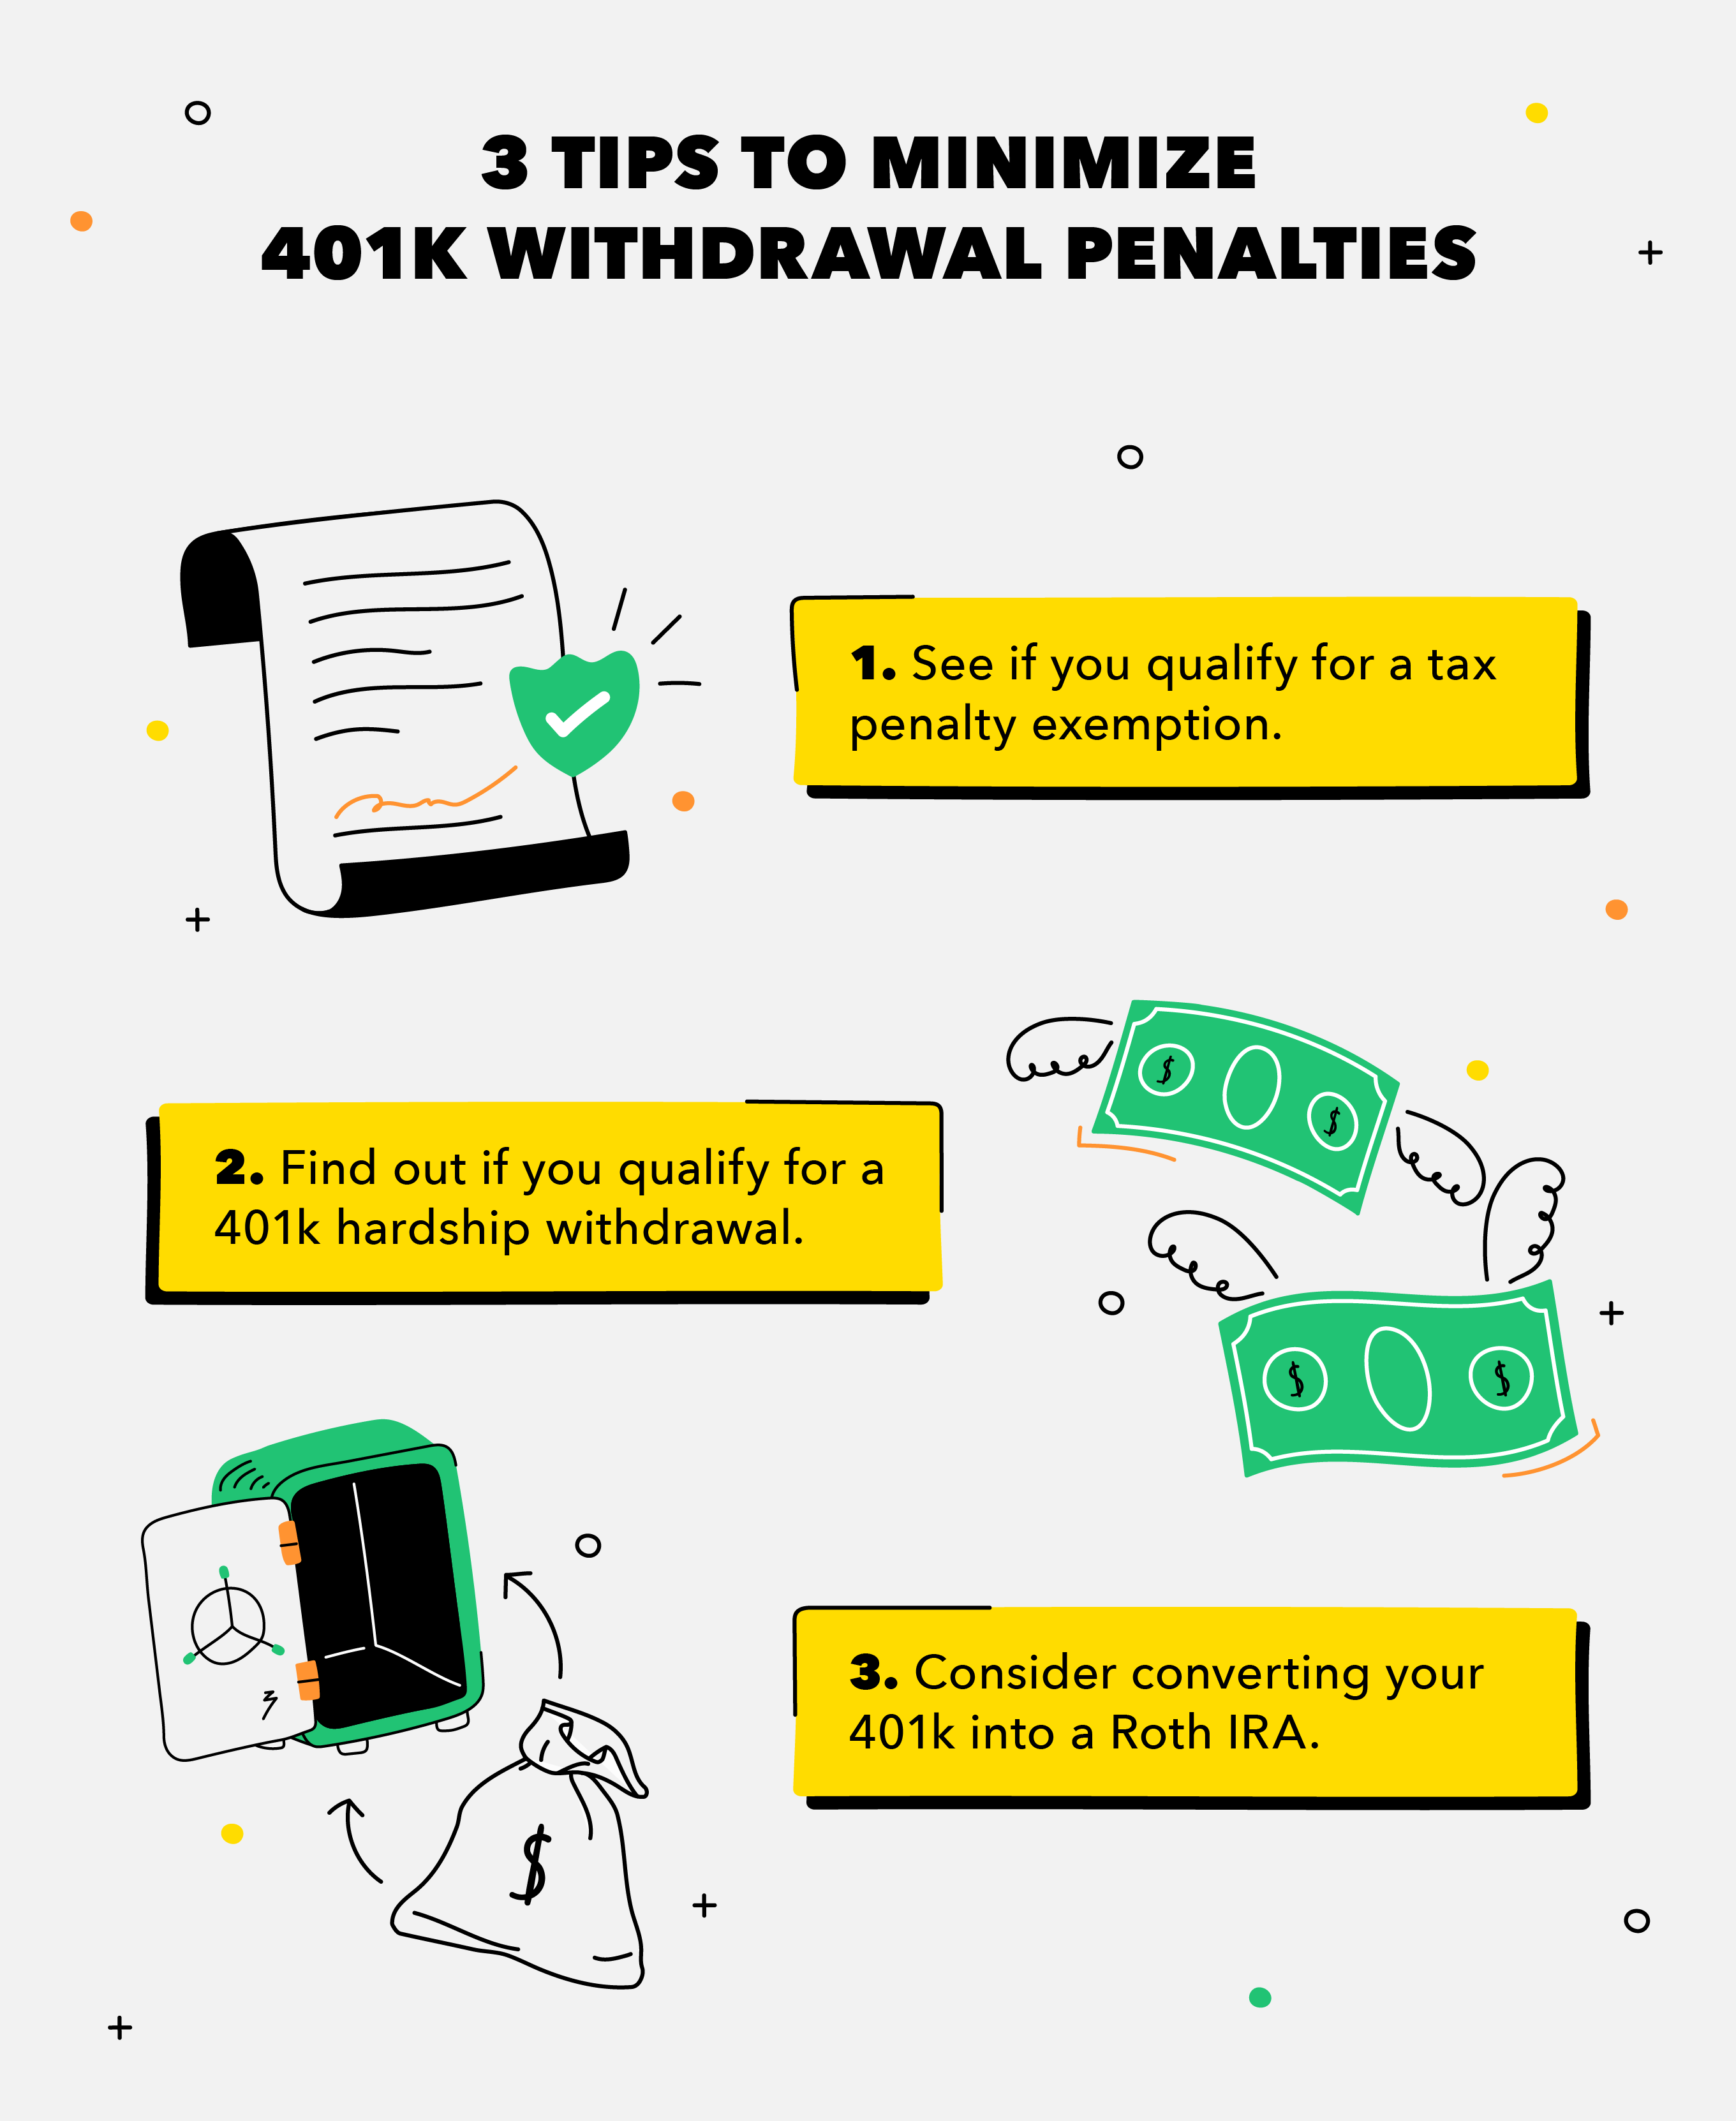 tips to minimize 401k withdrawal penalties